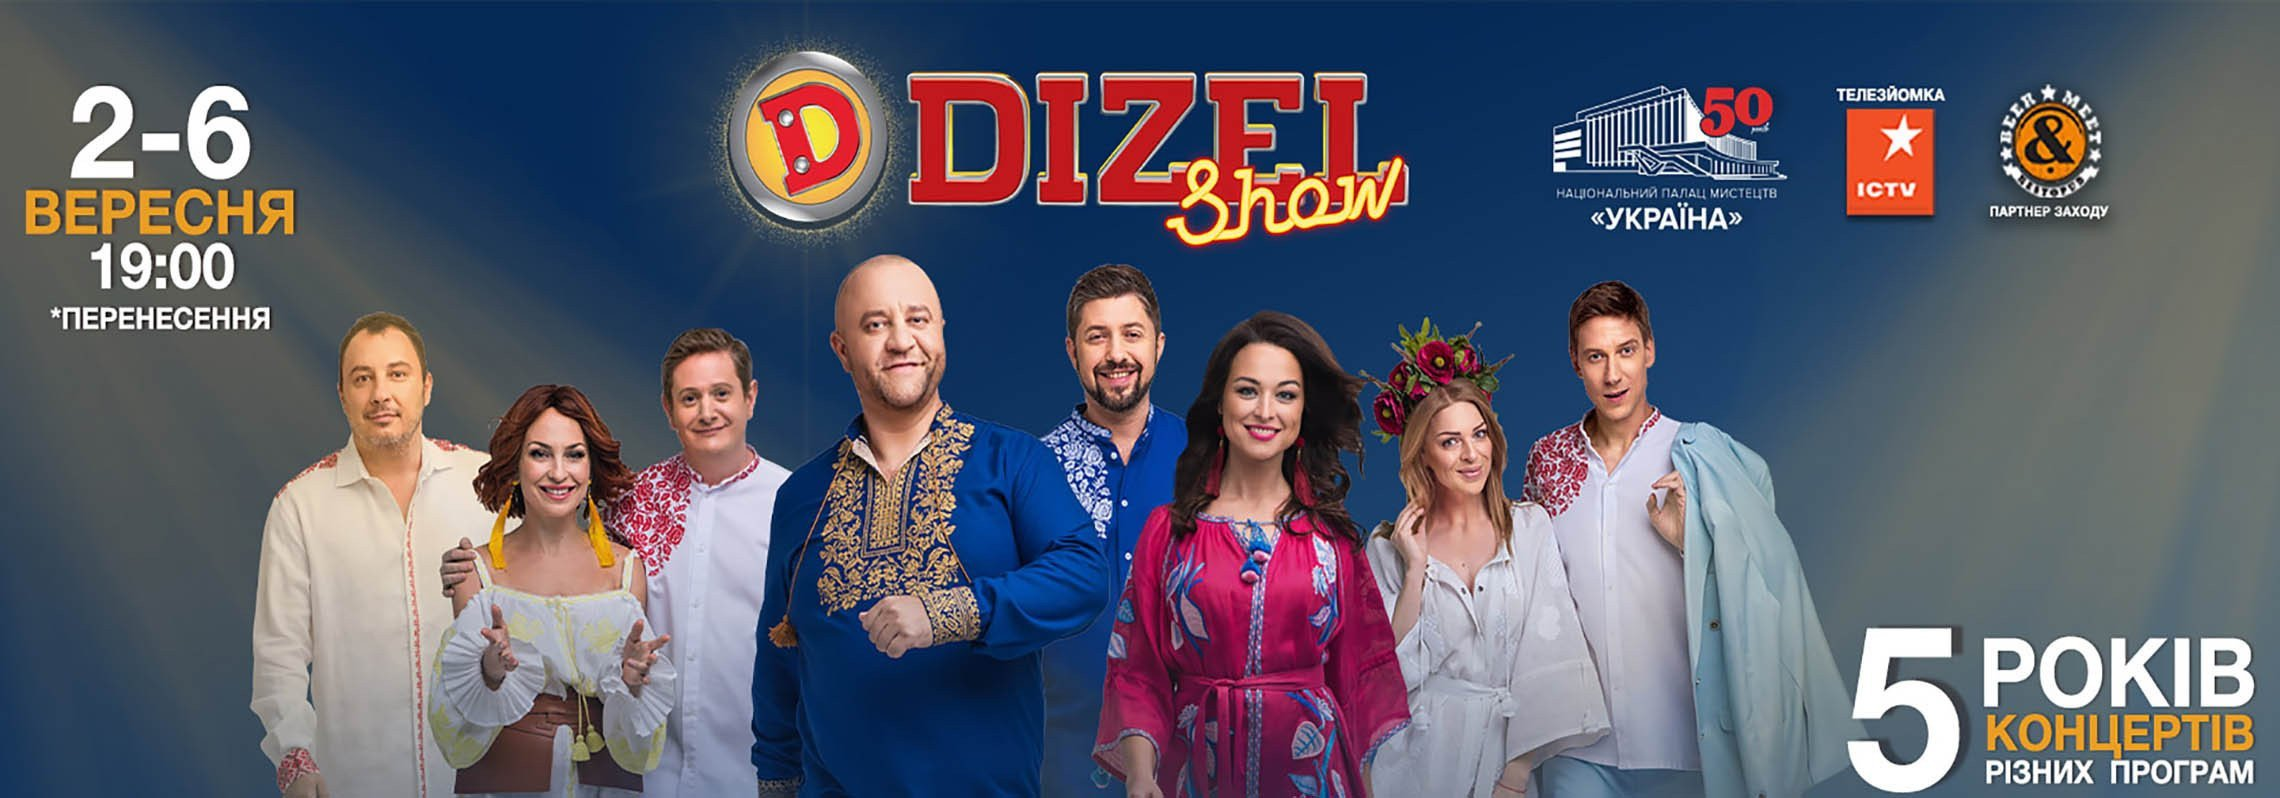 Dizel Show / Diesel Show - all performances